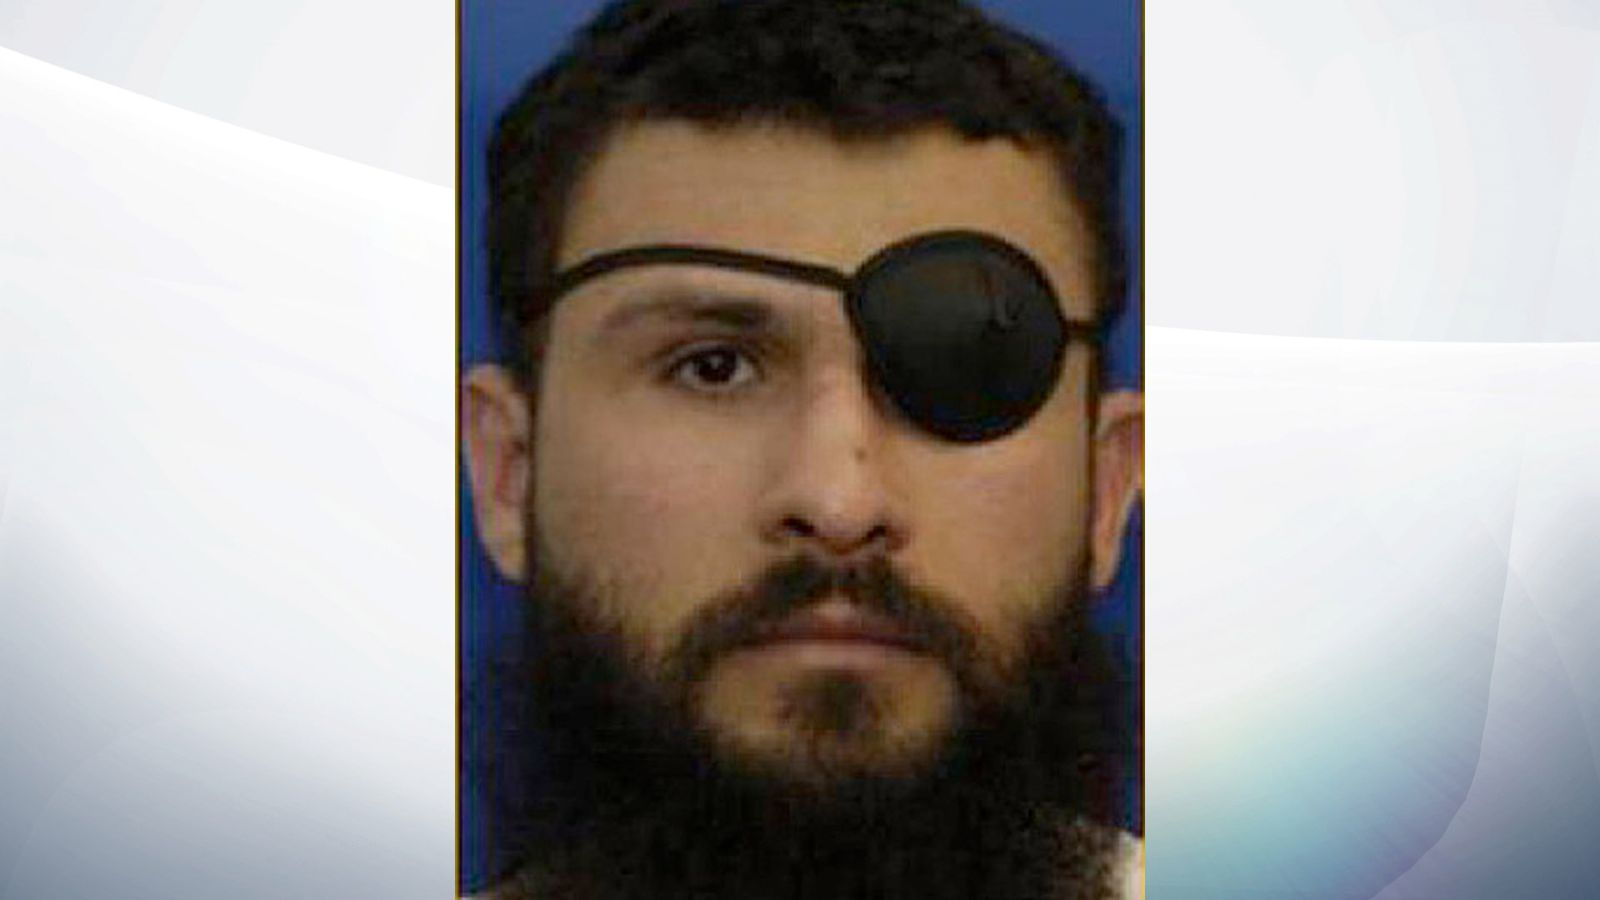 CIA considered using truth serum on al Qaeda suspect